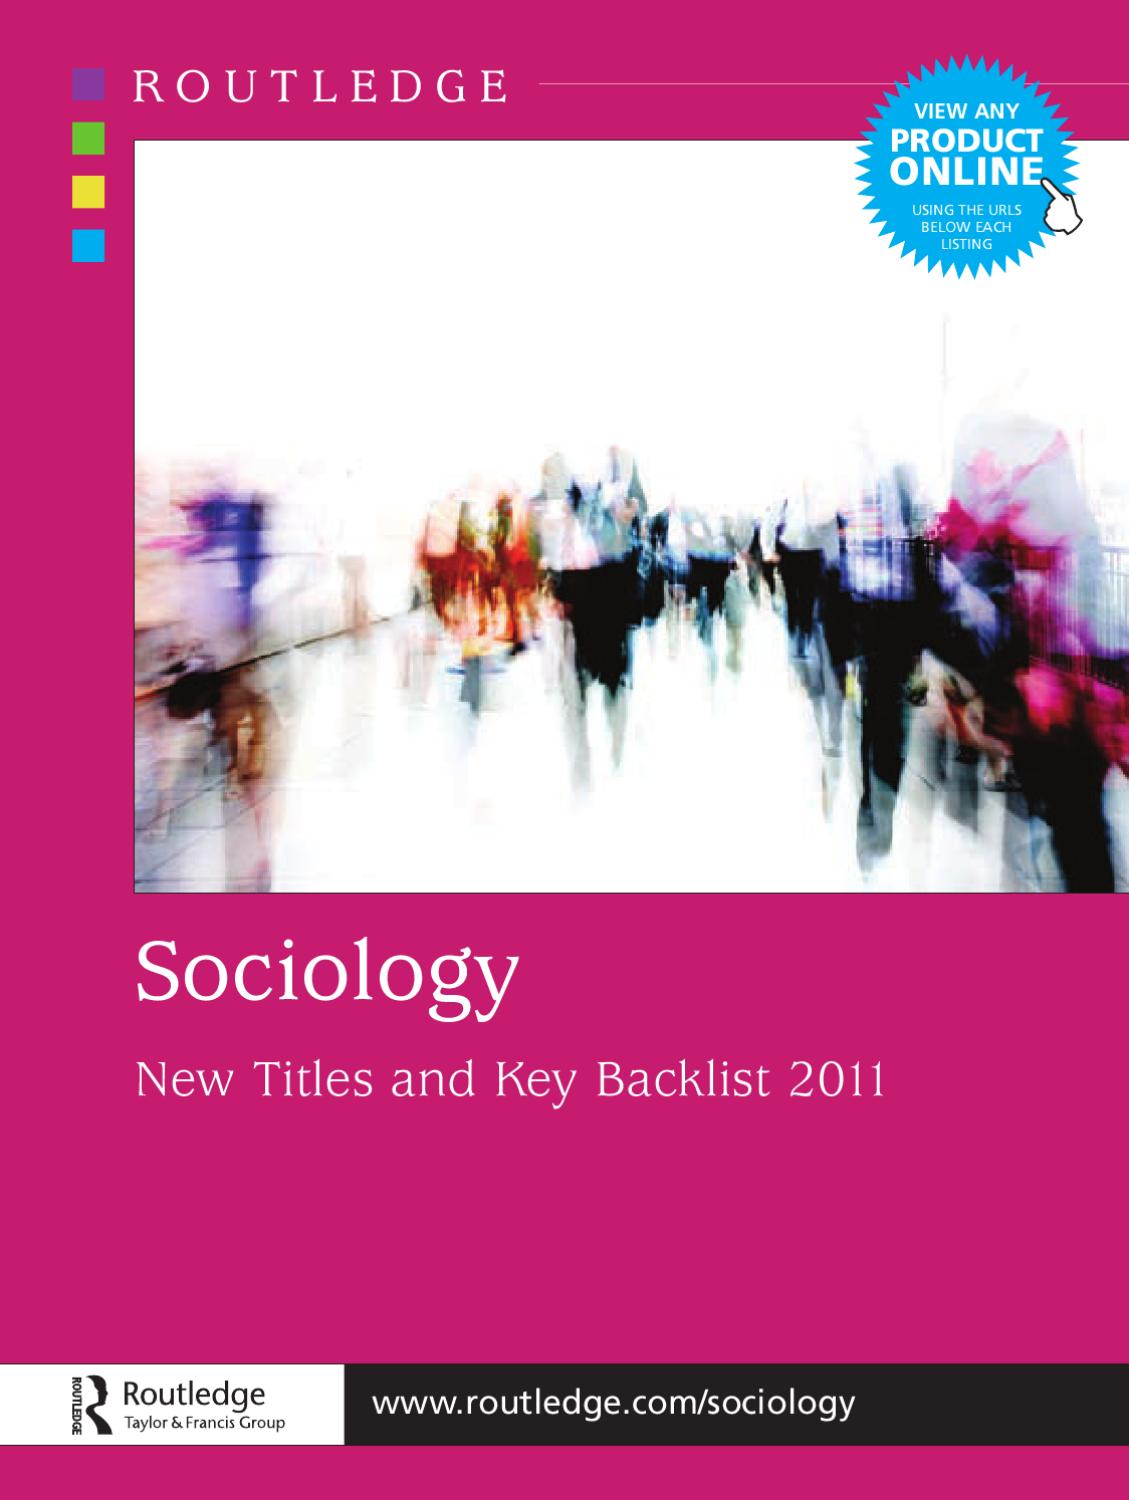 An intresting topic for sociology coursework regarding Islamophobia in the Britsh society?